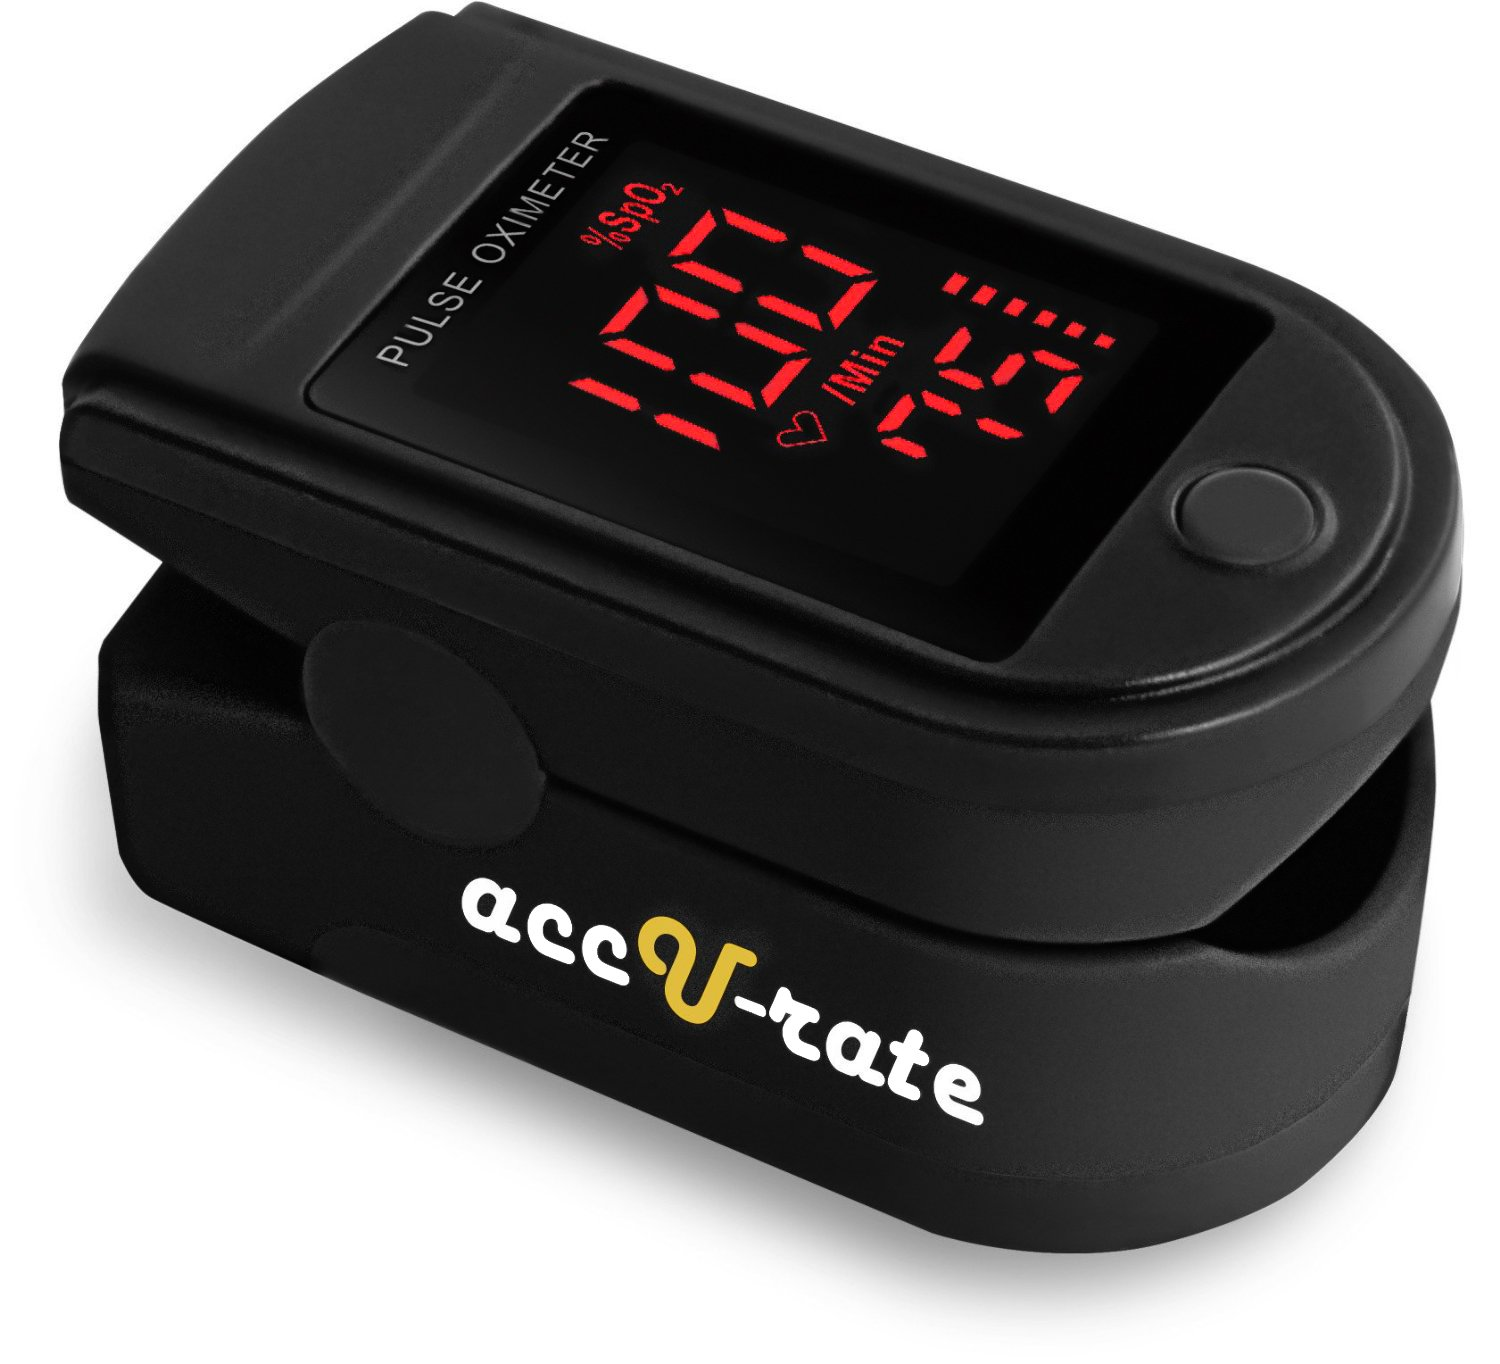 Acc U Rate Pro Series 500DL Fingertip Pulse Oximeter Blood Oxygen Saturation Monitor with silicon cover, batteries and lanyard (Mystic Black)